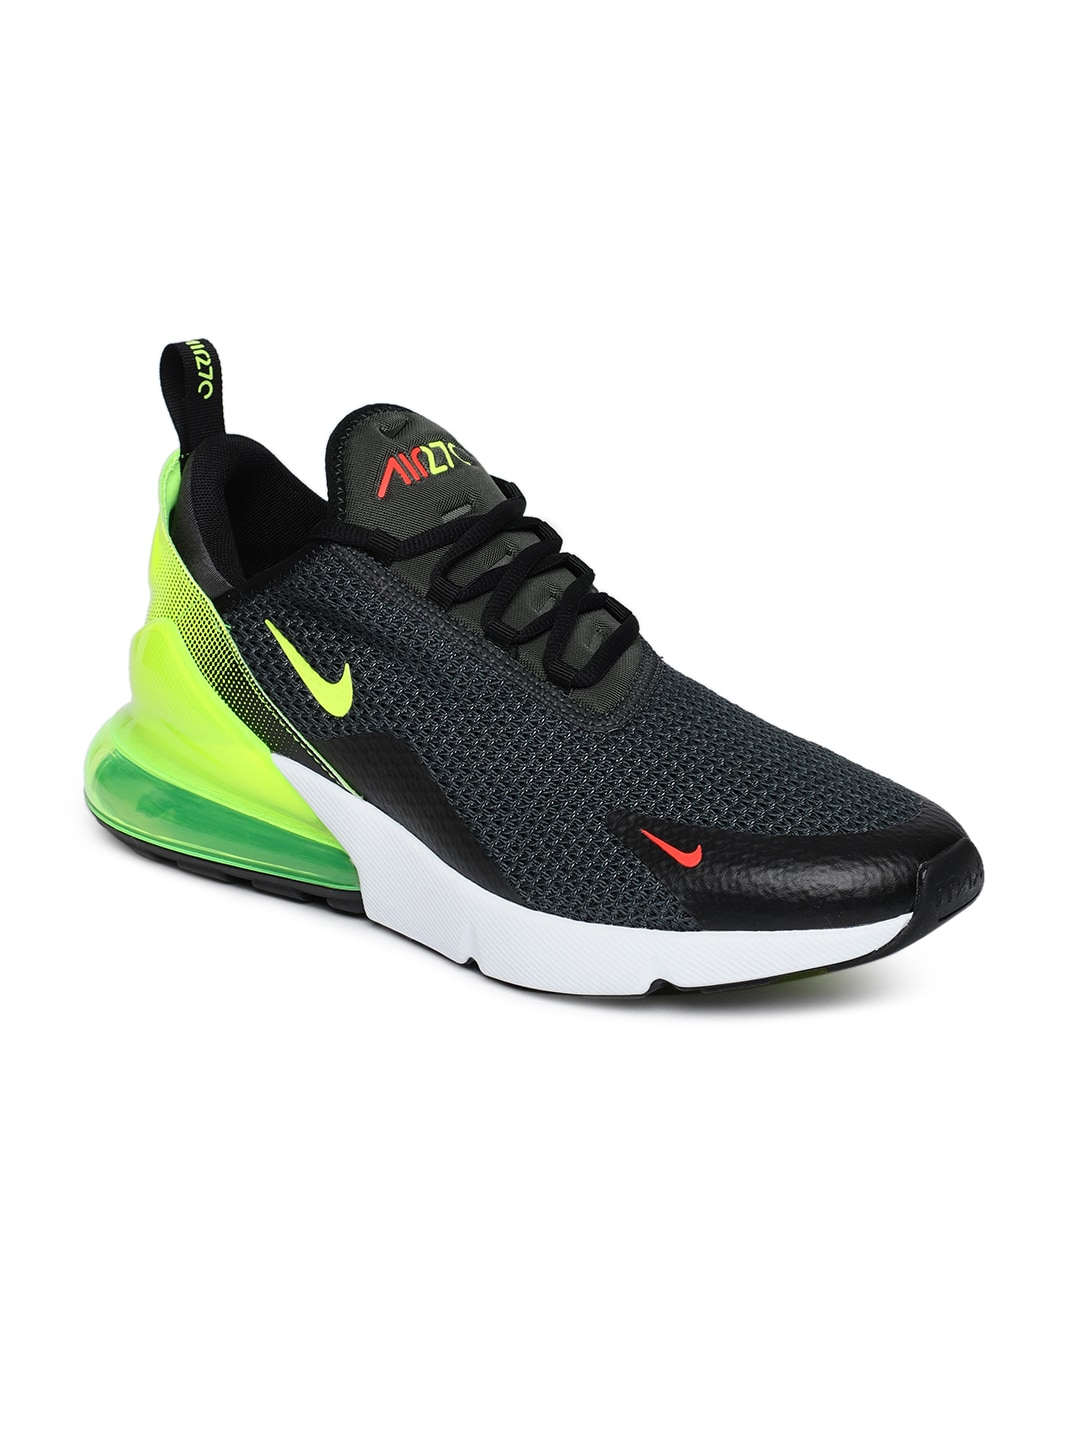 finest selection 102a0 0c3db Nike Air Max Basketball Shoes - Buy Nike Air Max Basketball Shoes online in  India